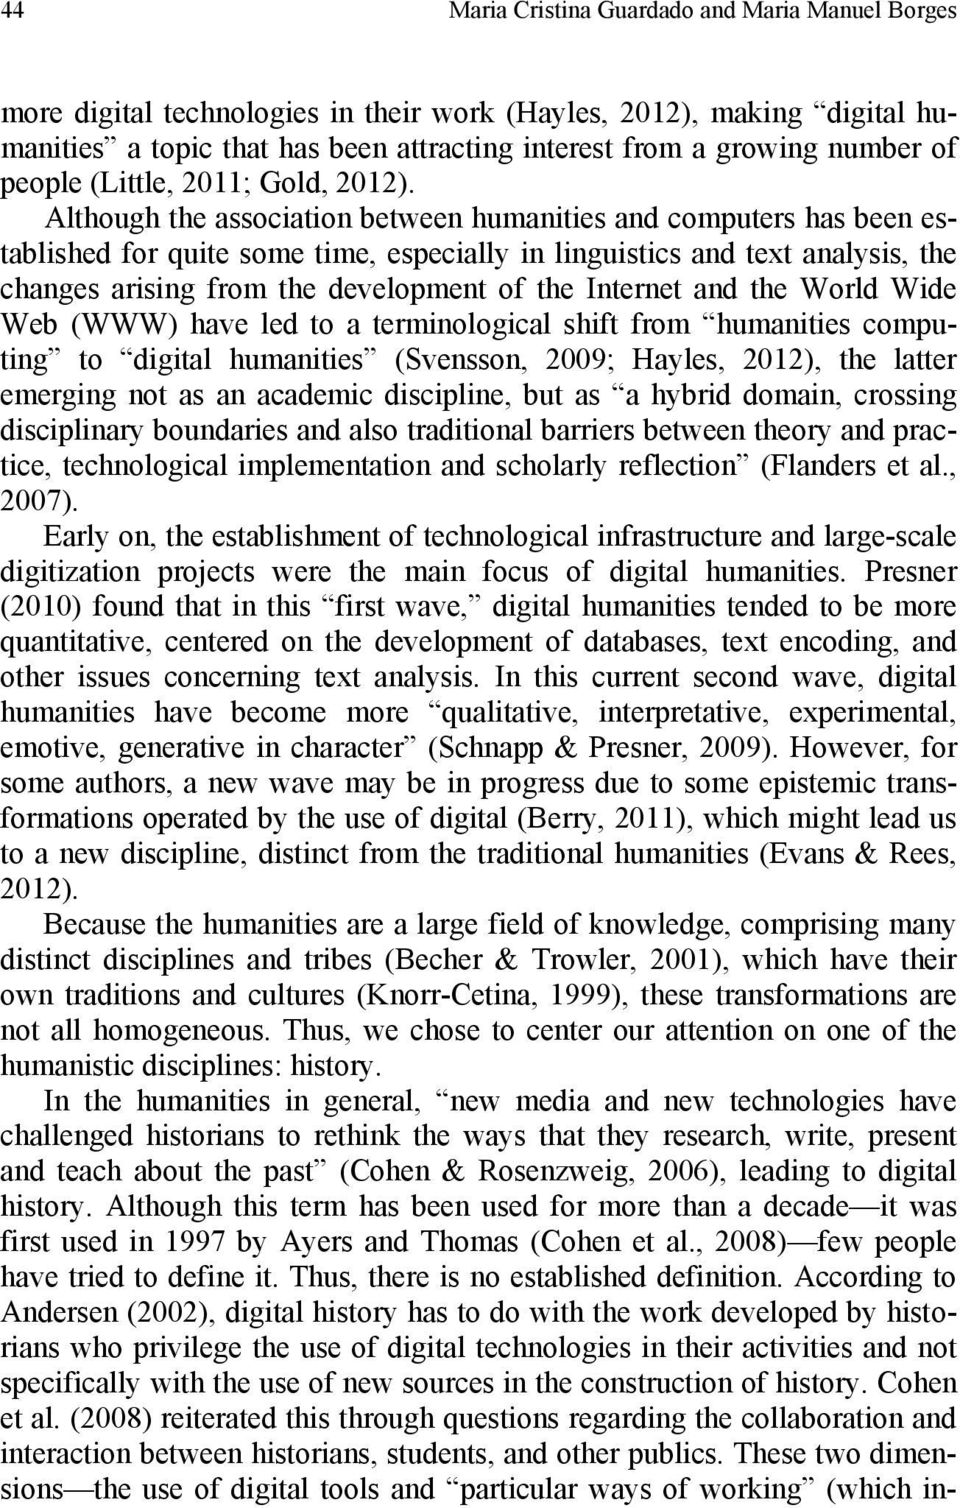 Although the association between humanities and computers has been established for quite some time, especially in linguistics and text analysis, the changes arising from the development of the